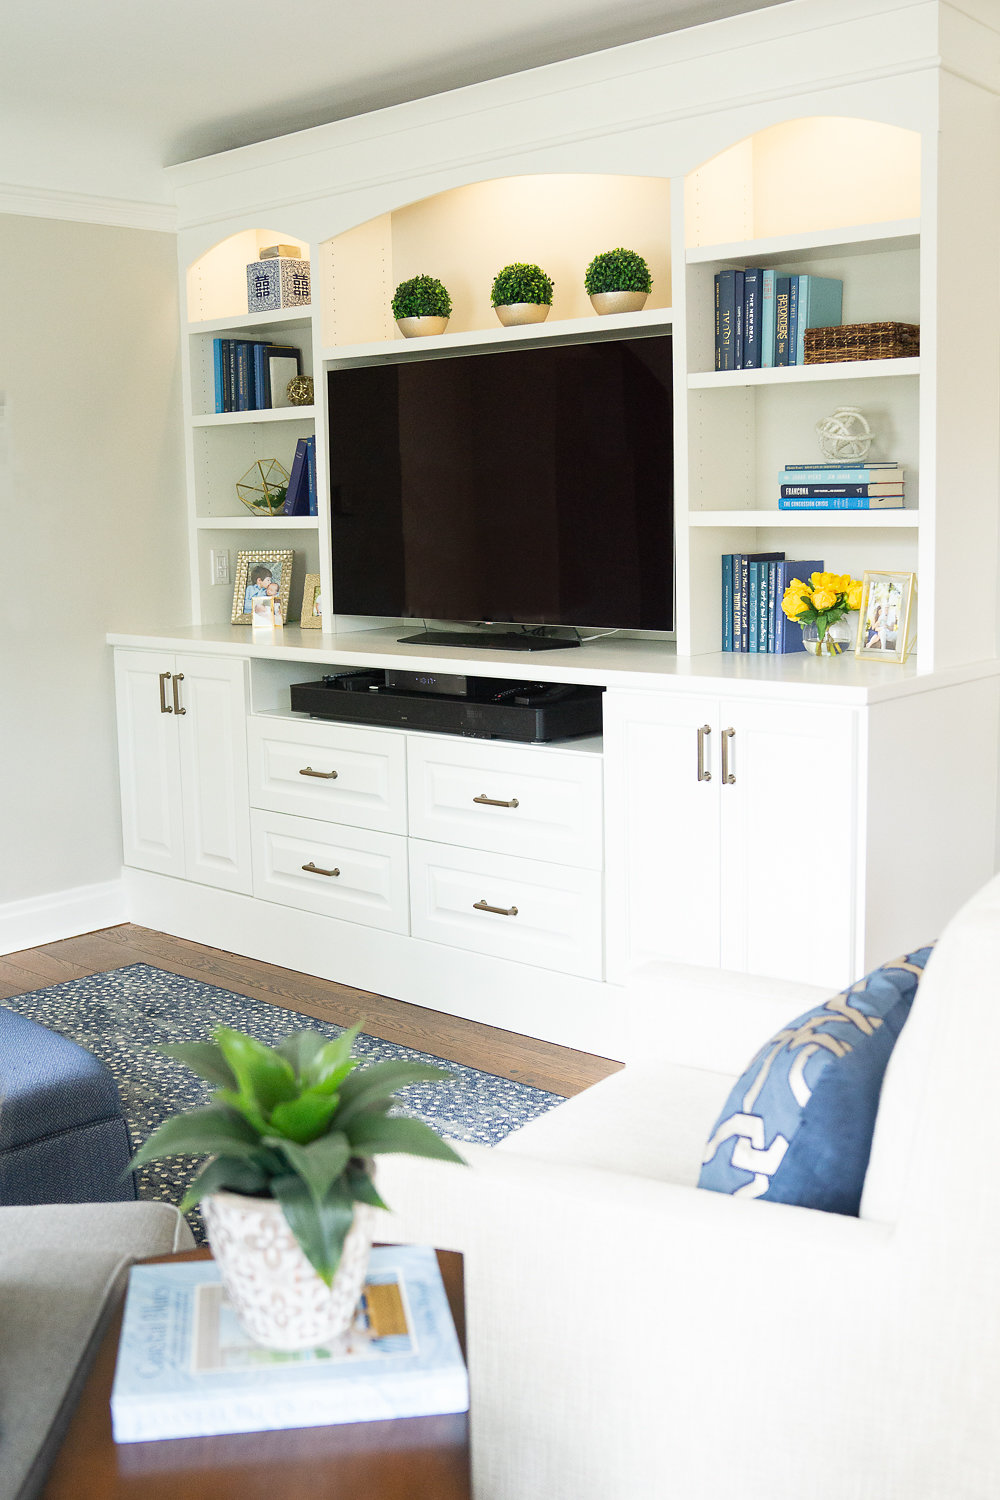 Modern living room with smart TV on white wooden cabinet with books and plants